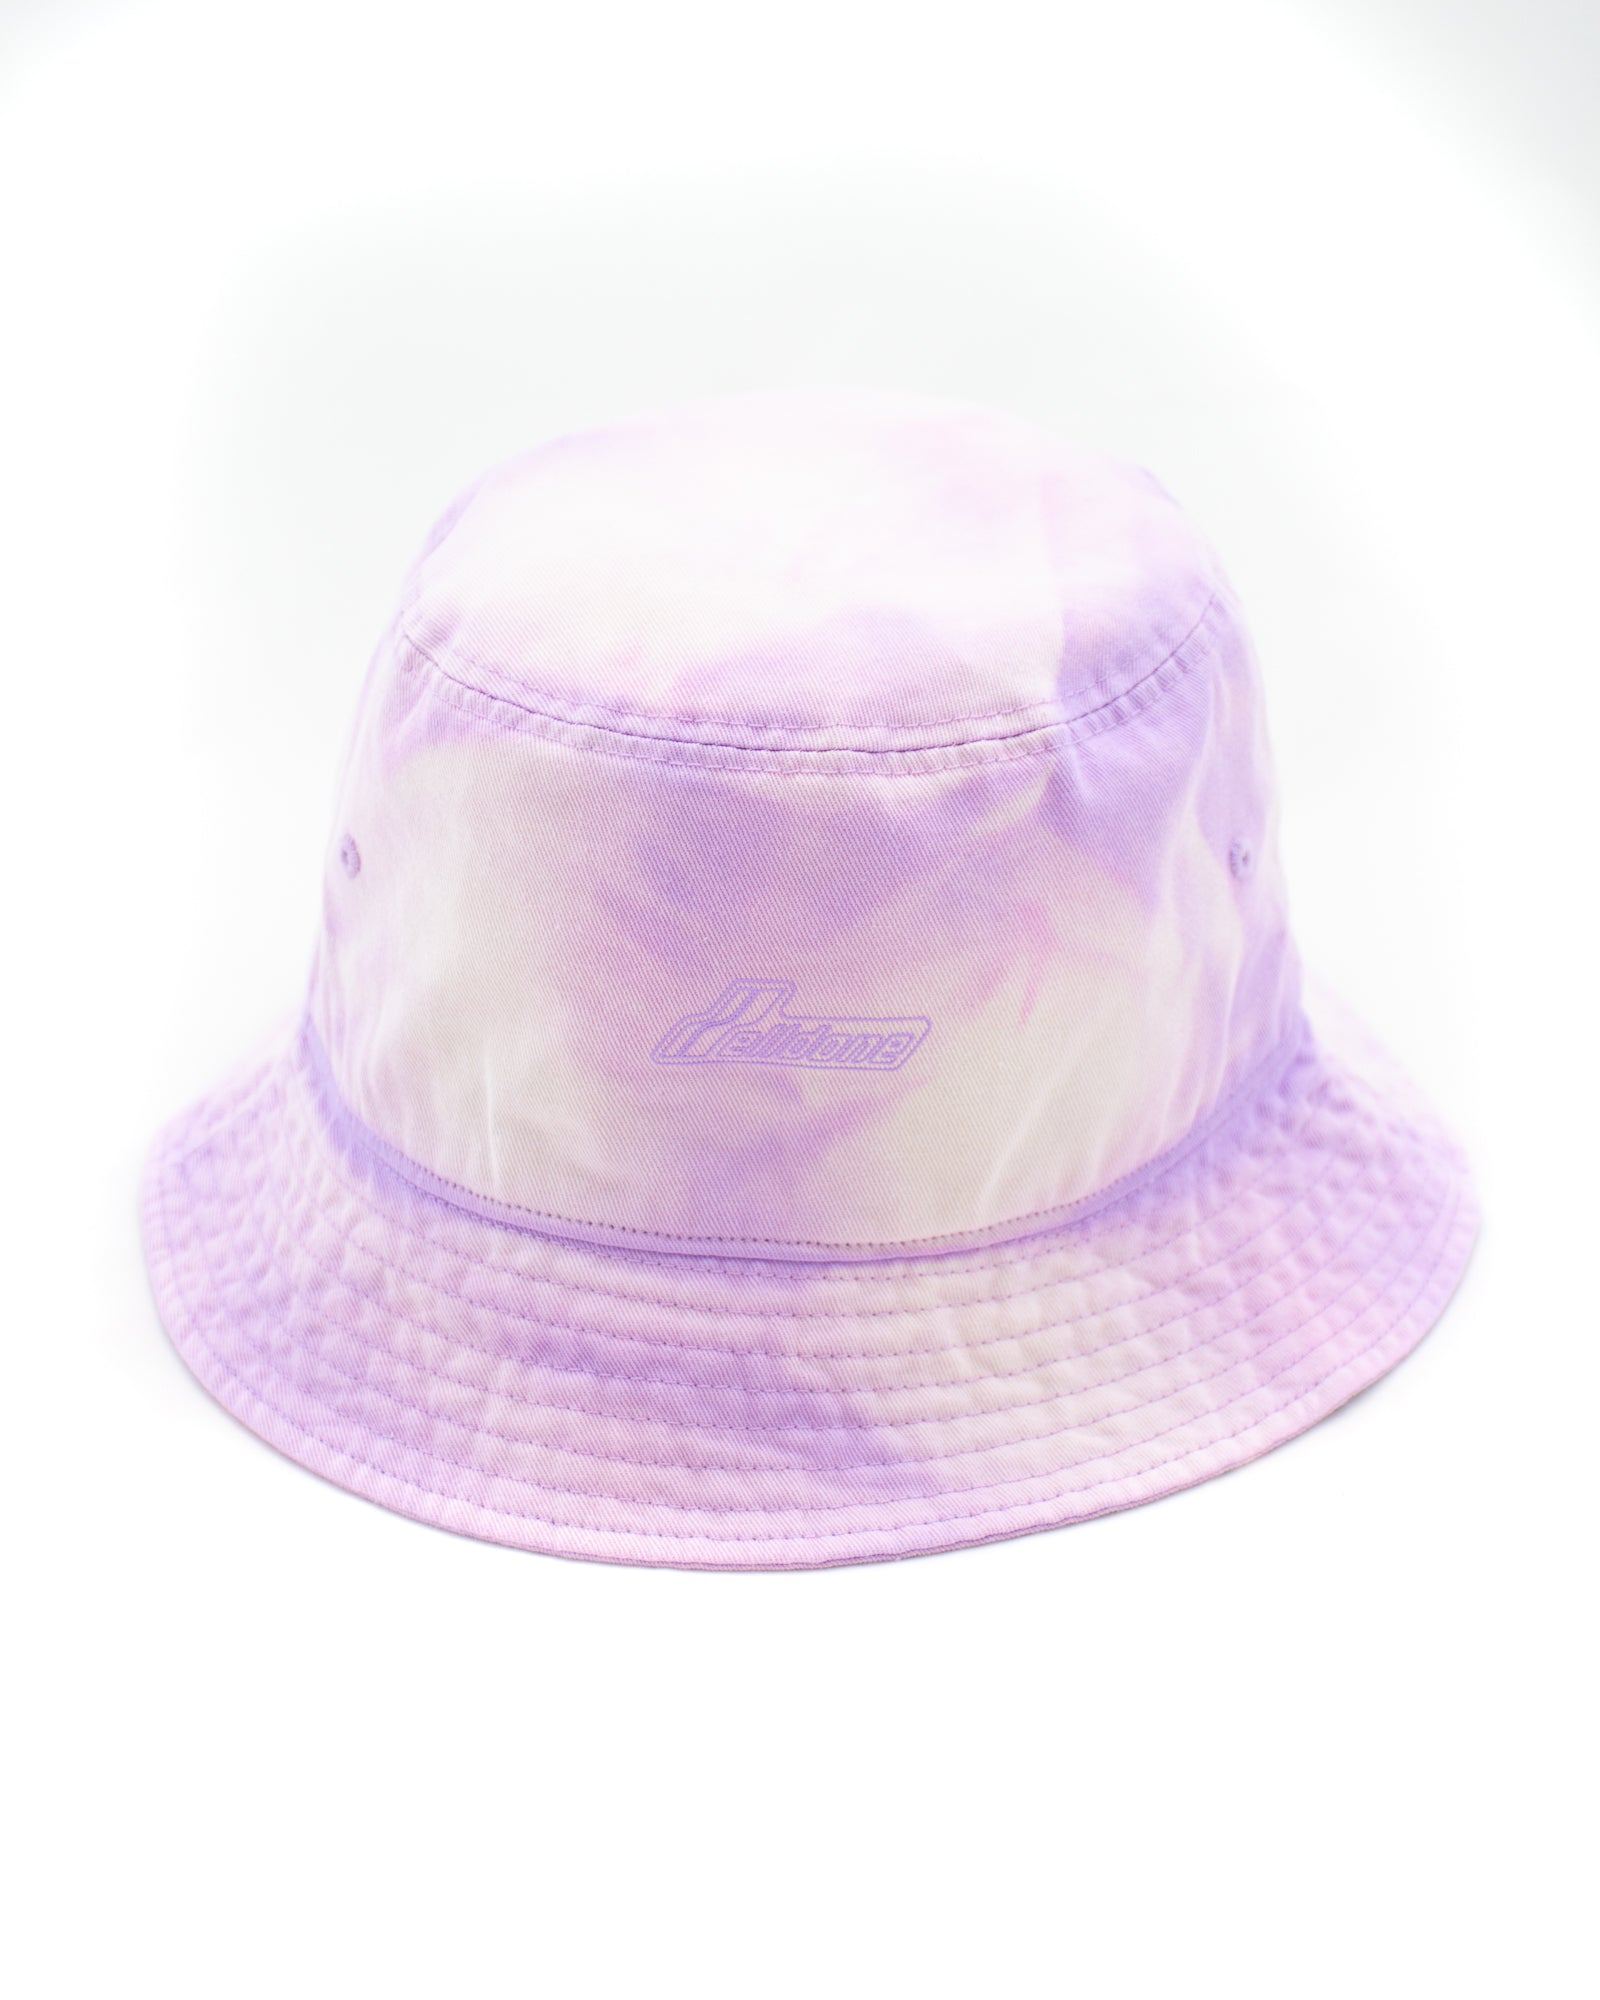 WE11DONE Iridescent Bucket Hat